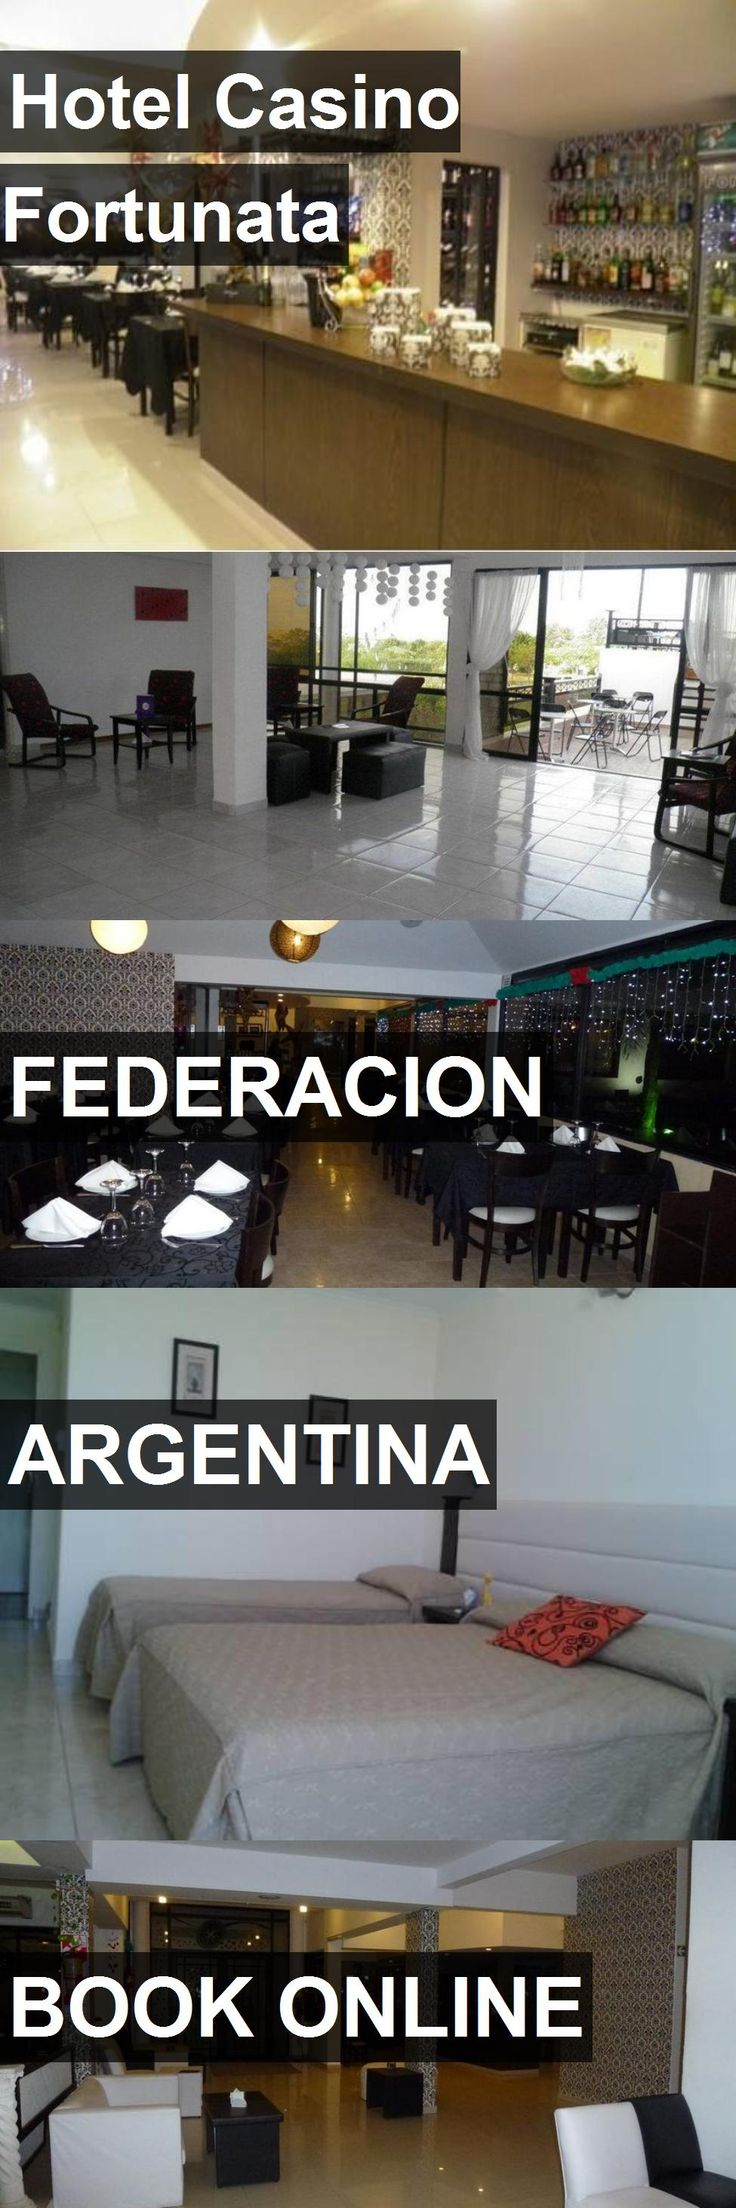 Hotel Casino Fortunata in Federacion, Argentina. For more information, photos, reviews and best prices please follow the link. #Argentina #Federacion #travel #vacation #hotel